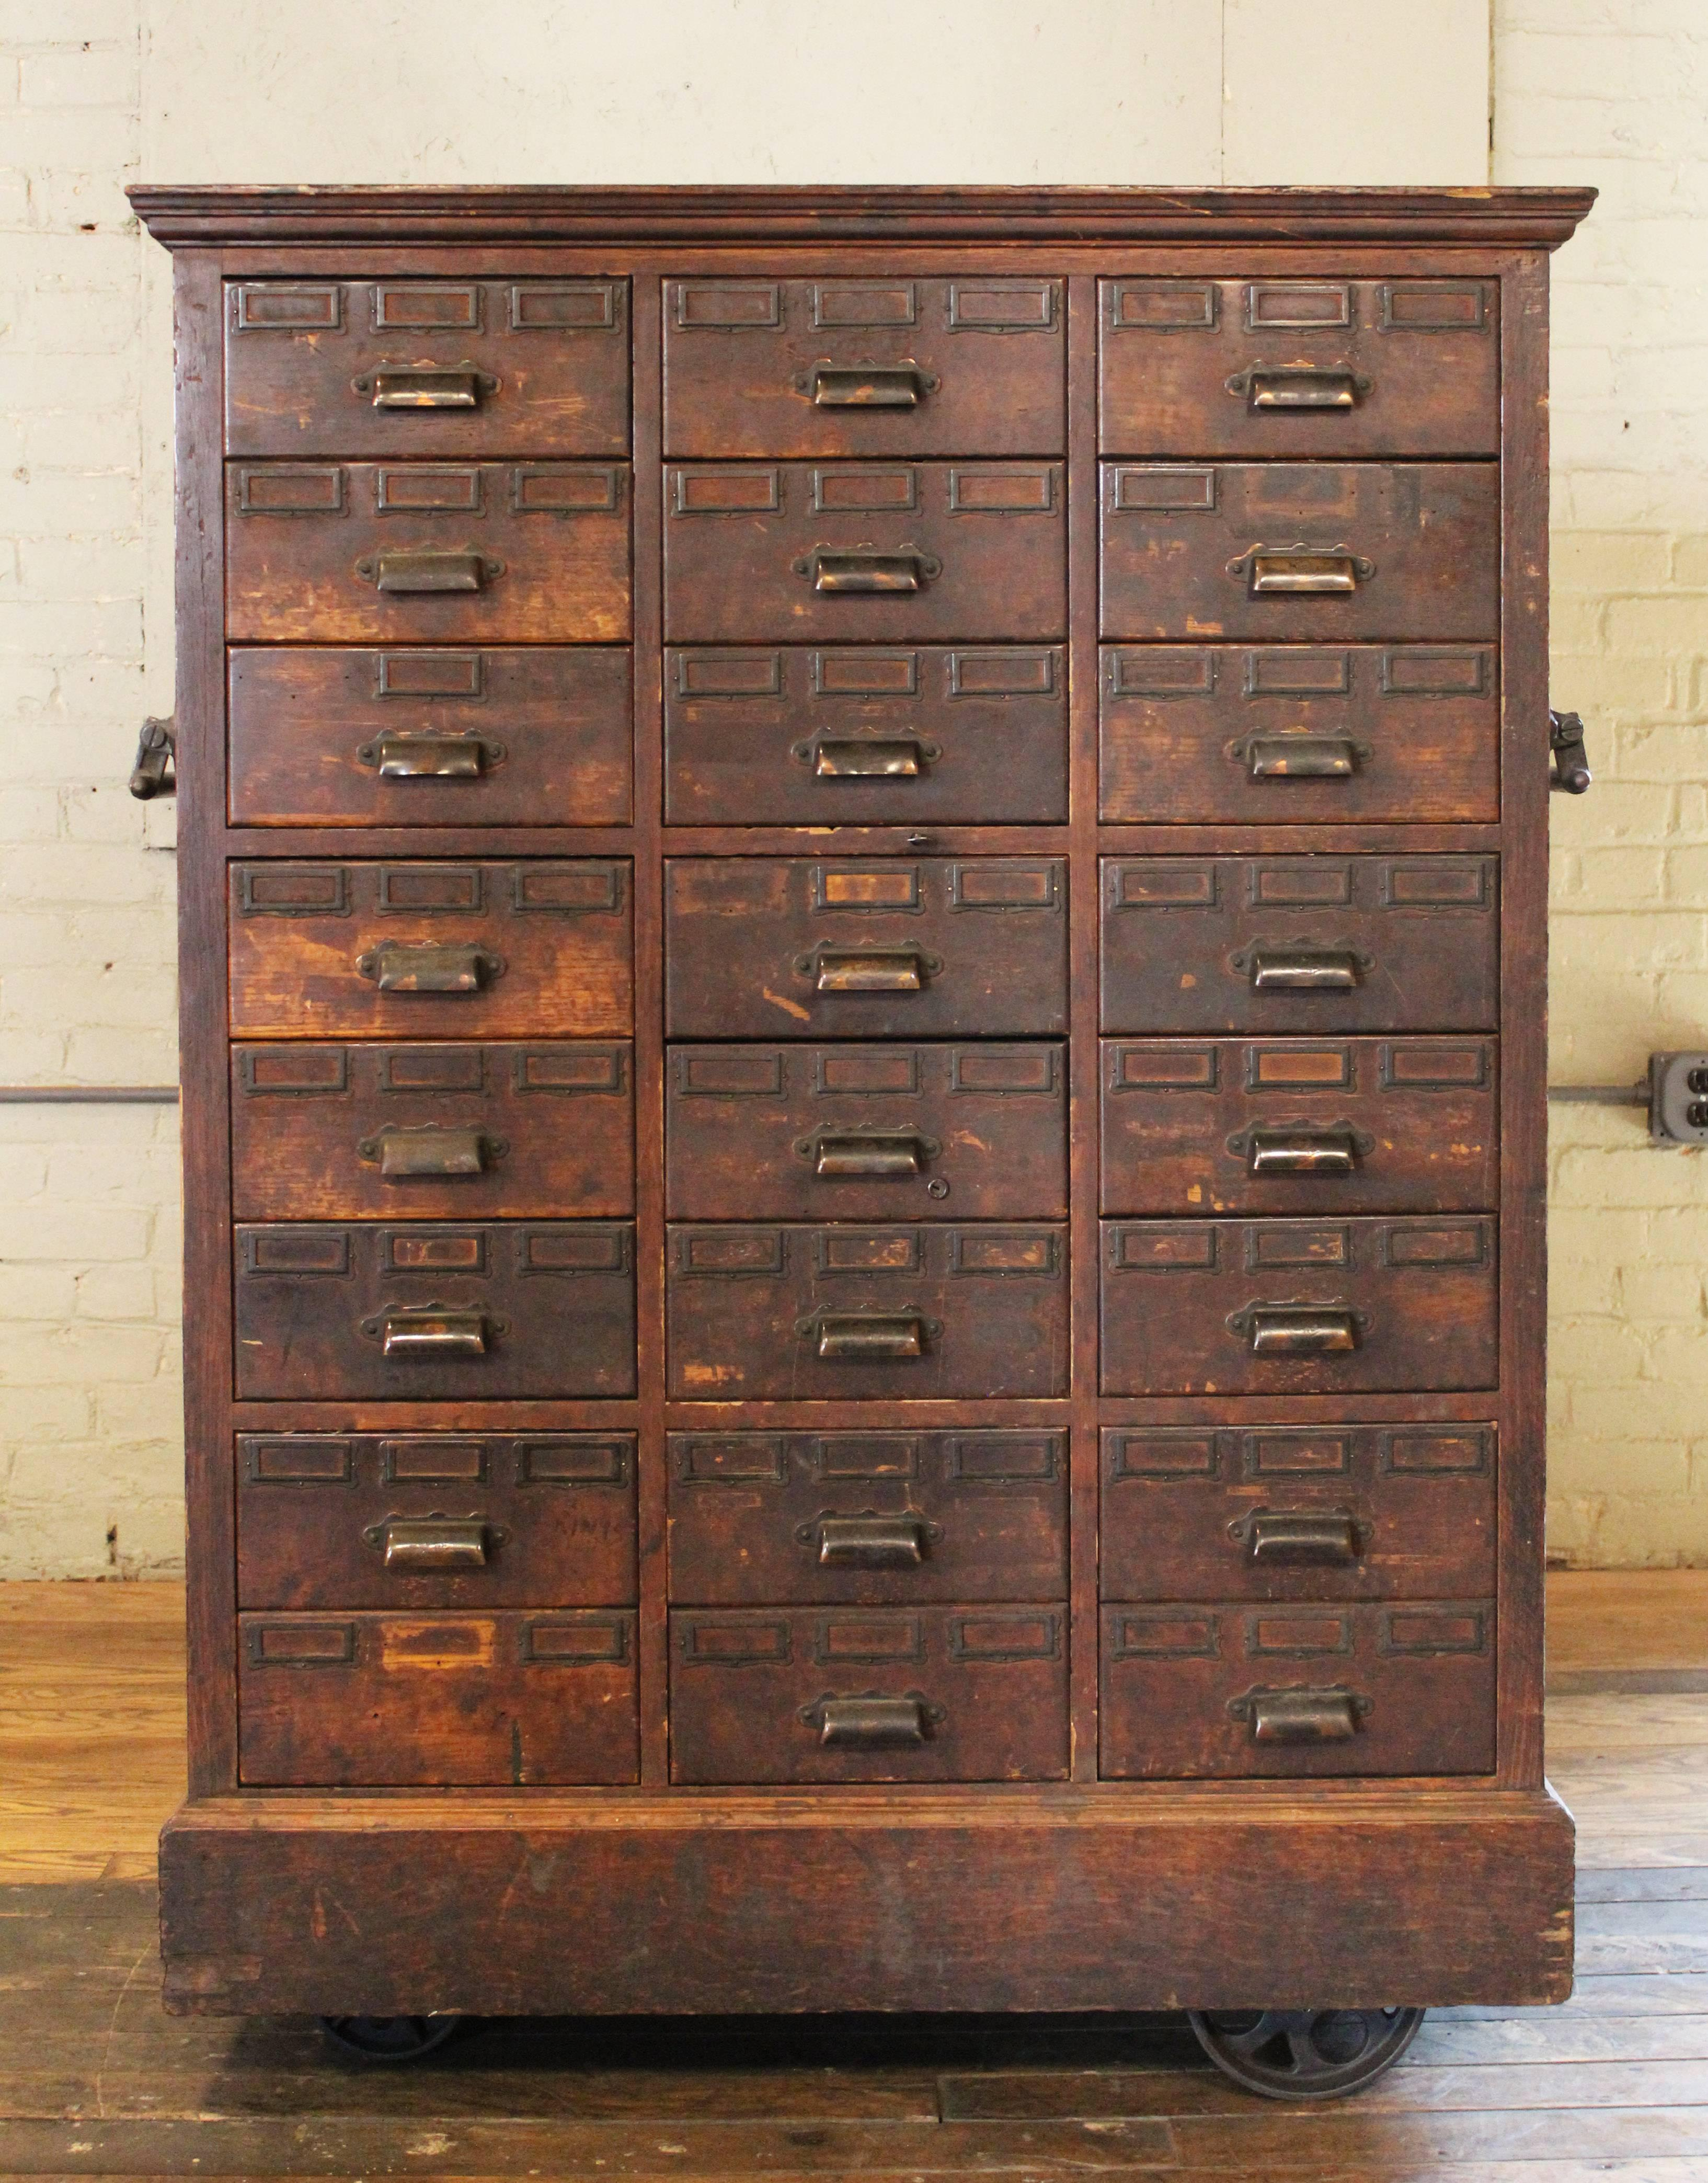 Beau Rolling Apothecary Wood Storage Cabinet, Vintage Industrial With Brass  Hardware For Sale 1